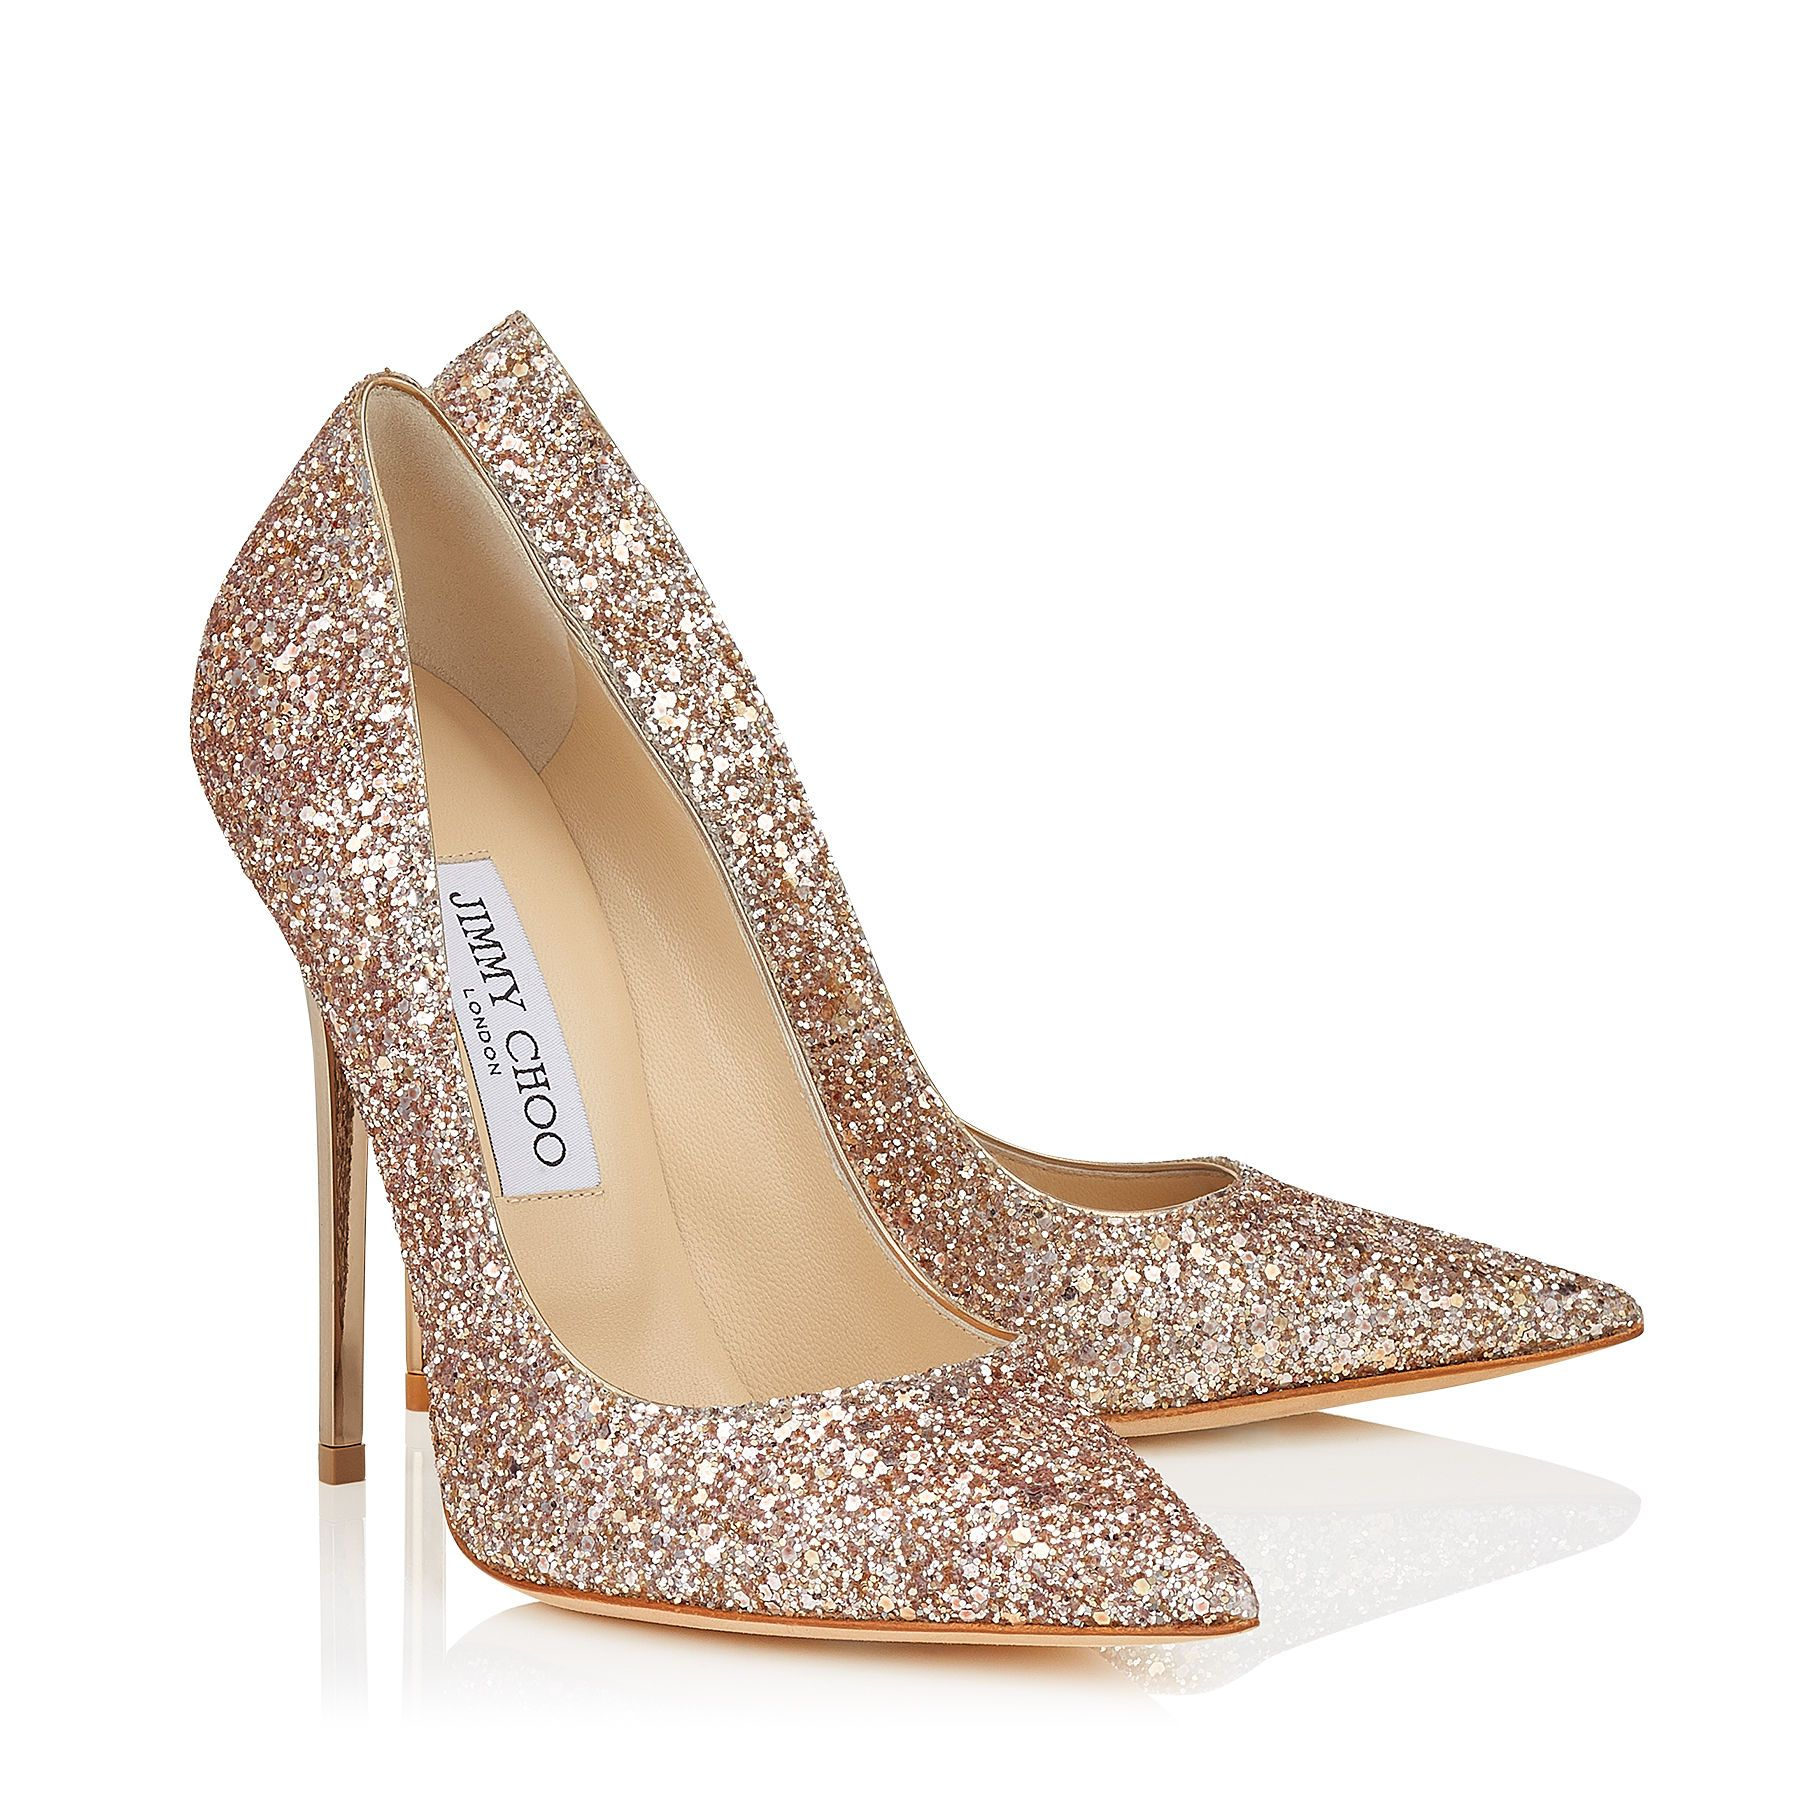 Silver high heels with diamonds